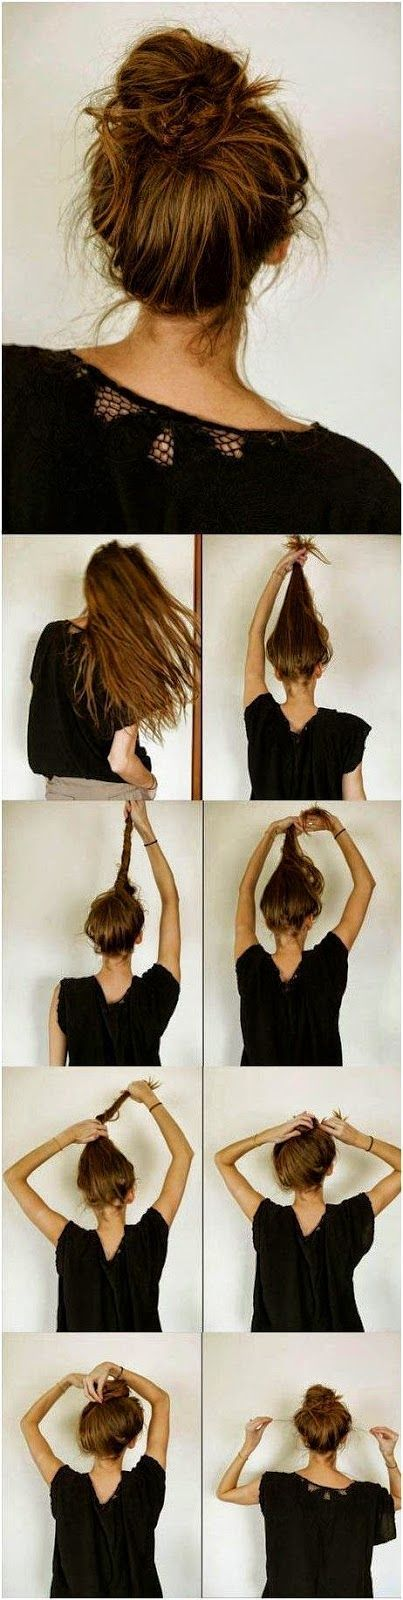 5 Easy Messy Buns For Long Hair Tutorial  Quick, Easy, Cute  and Simple Step By ...